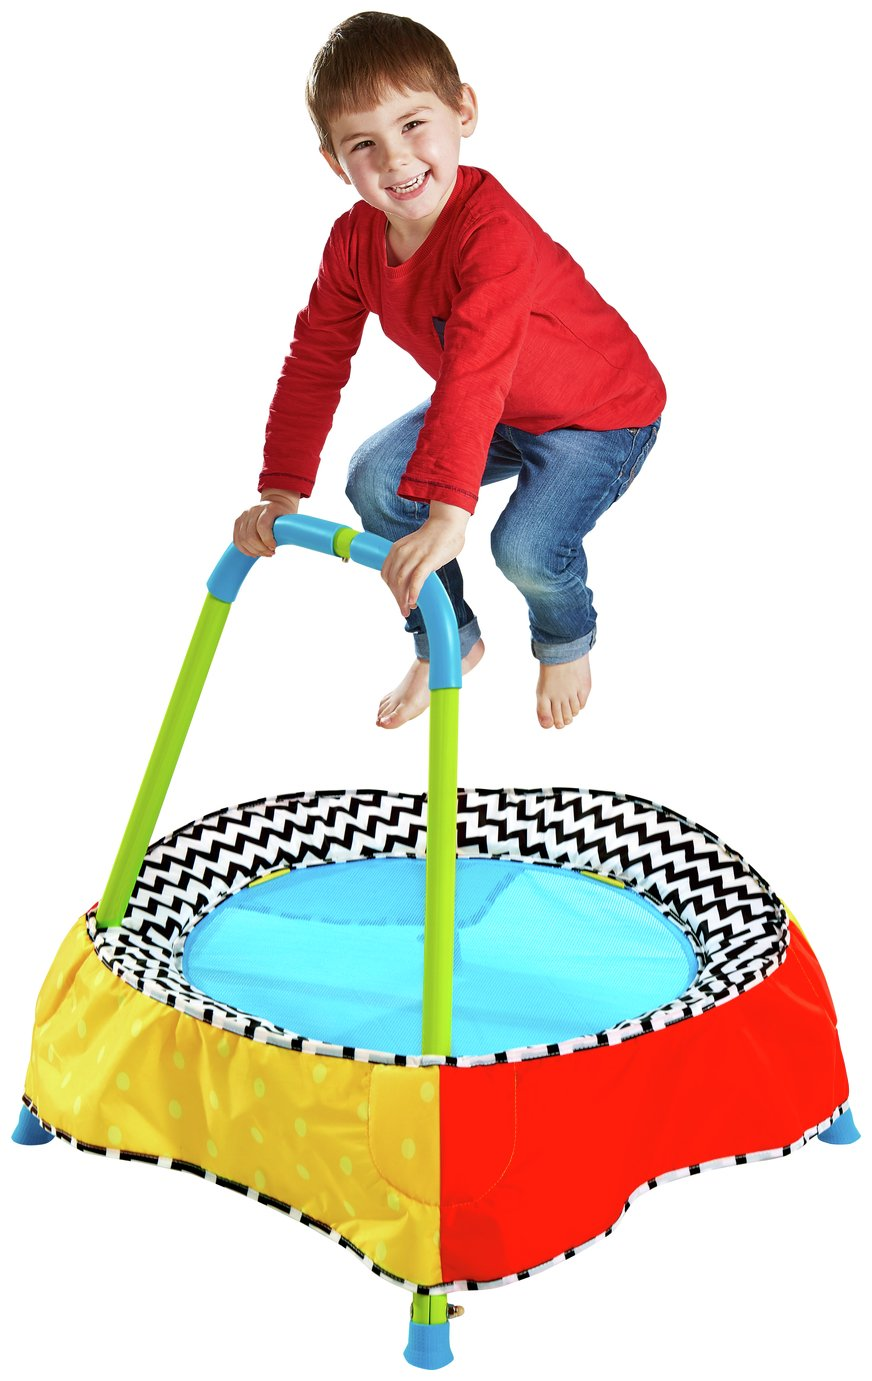 FAST /& FREE Details about  /Chad Valley Indoor//Outdoor Kid/'s Toddler Trampoline